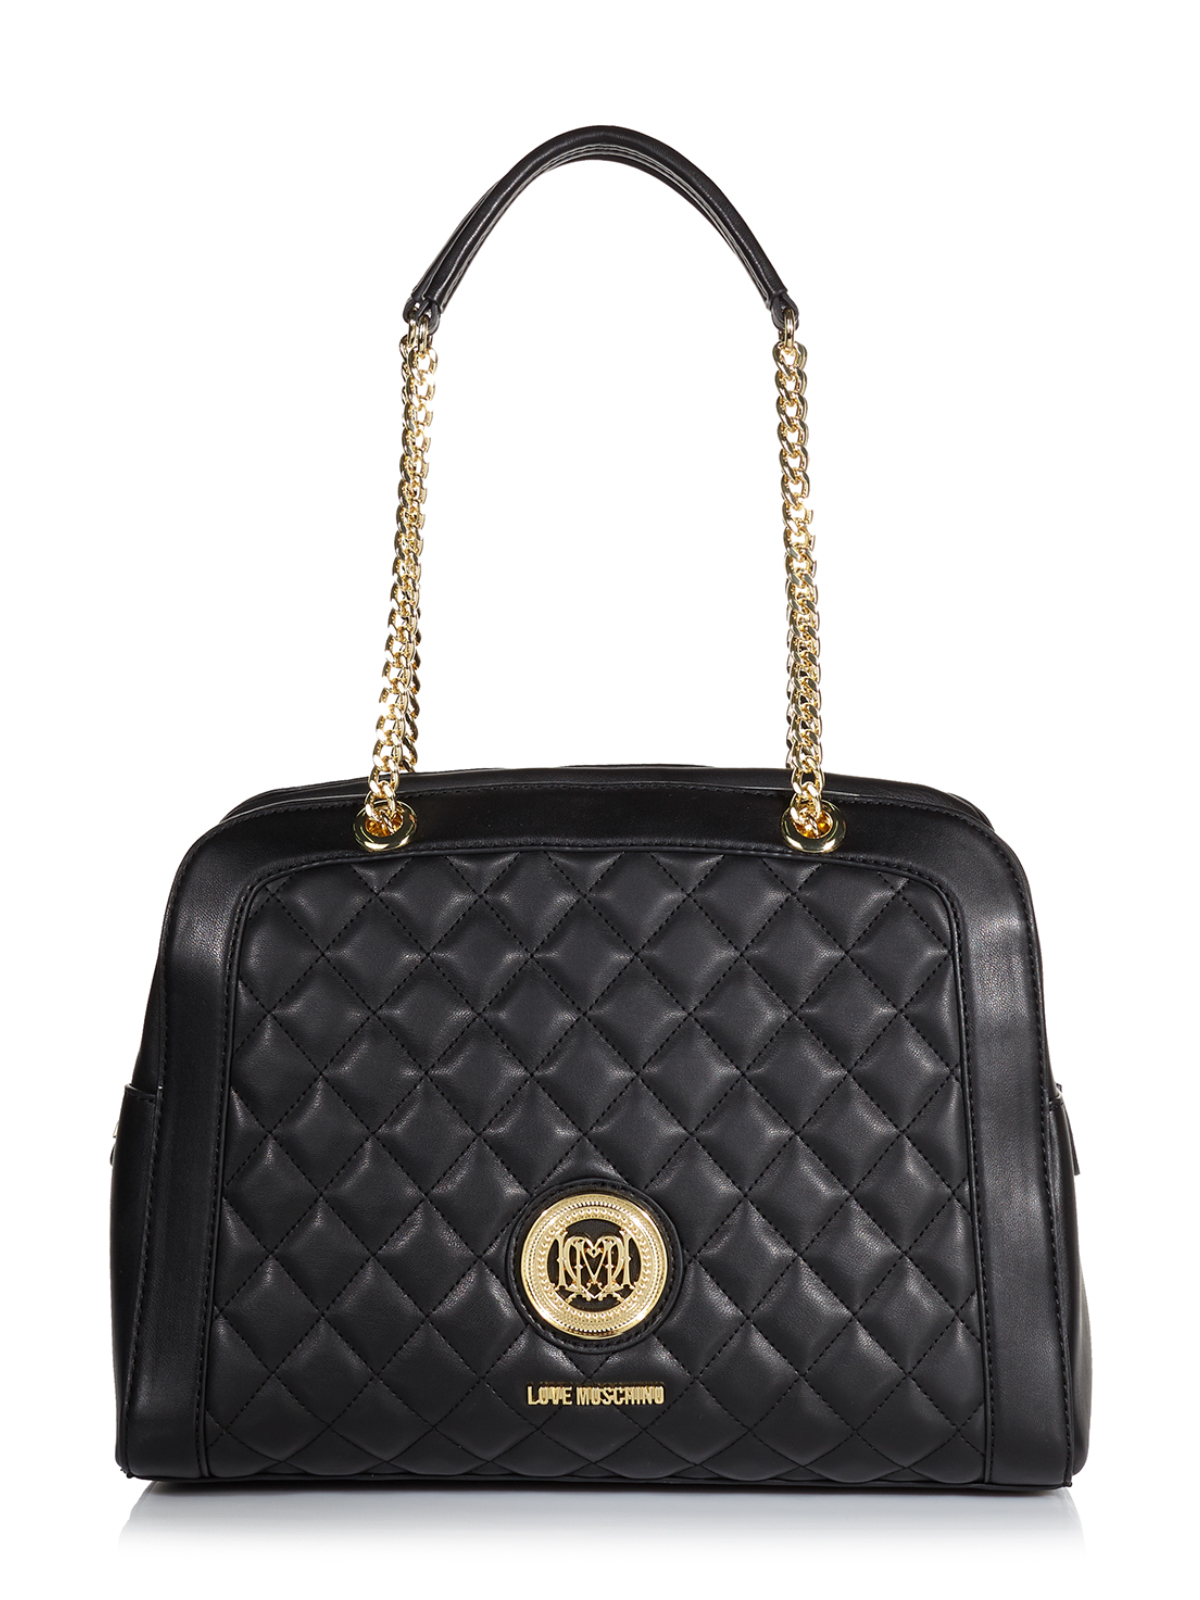 moschino tasche jc4006pp11la0000 schwarz polyurethan ebay. Black Bedroom Furniture Sets. Home Design Ideas